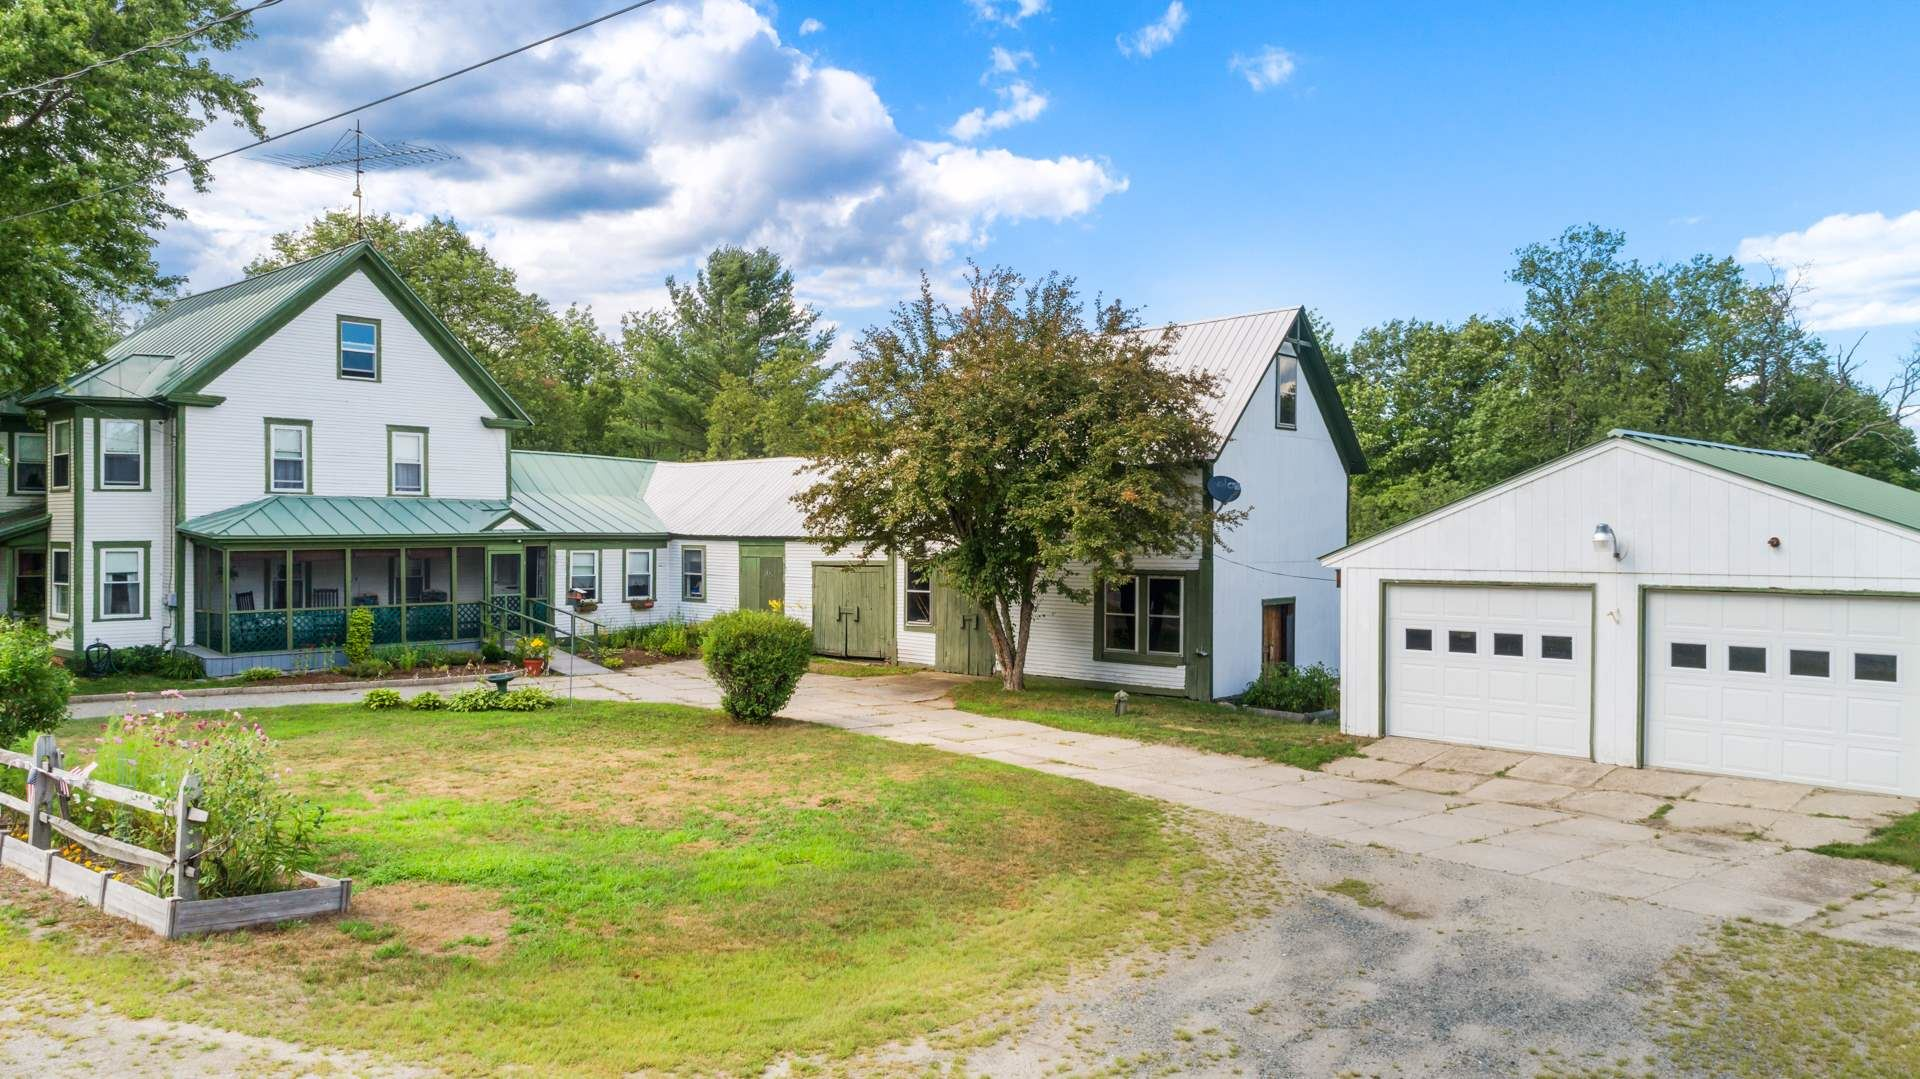 571 Route 114, Grantham, NH 03753 - MLS#: 4823367